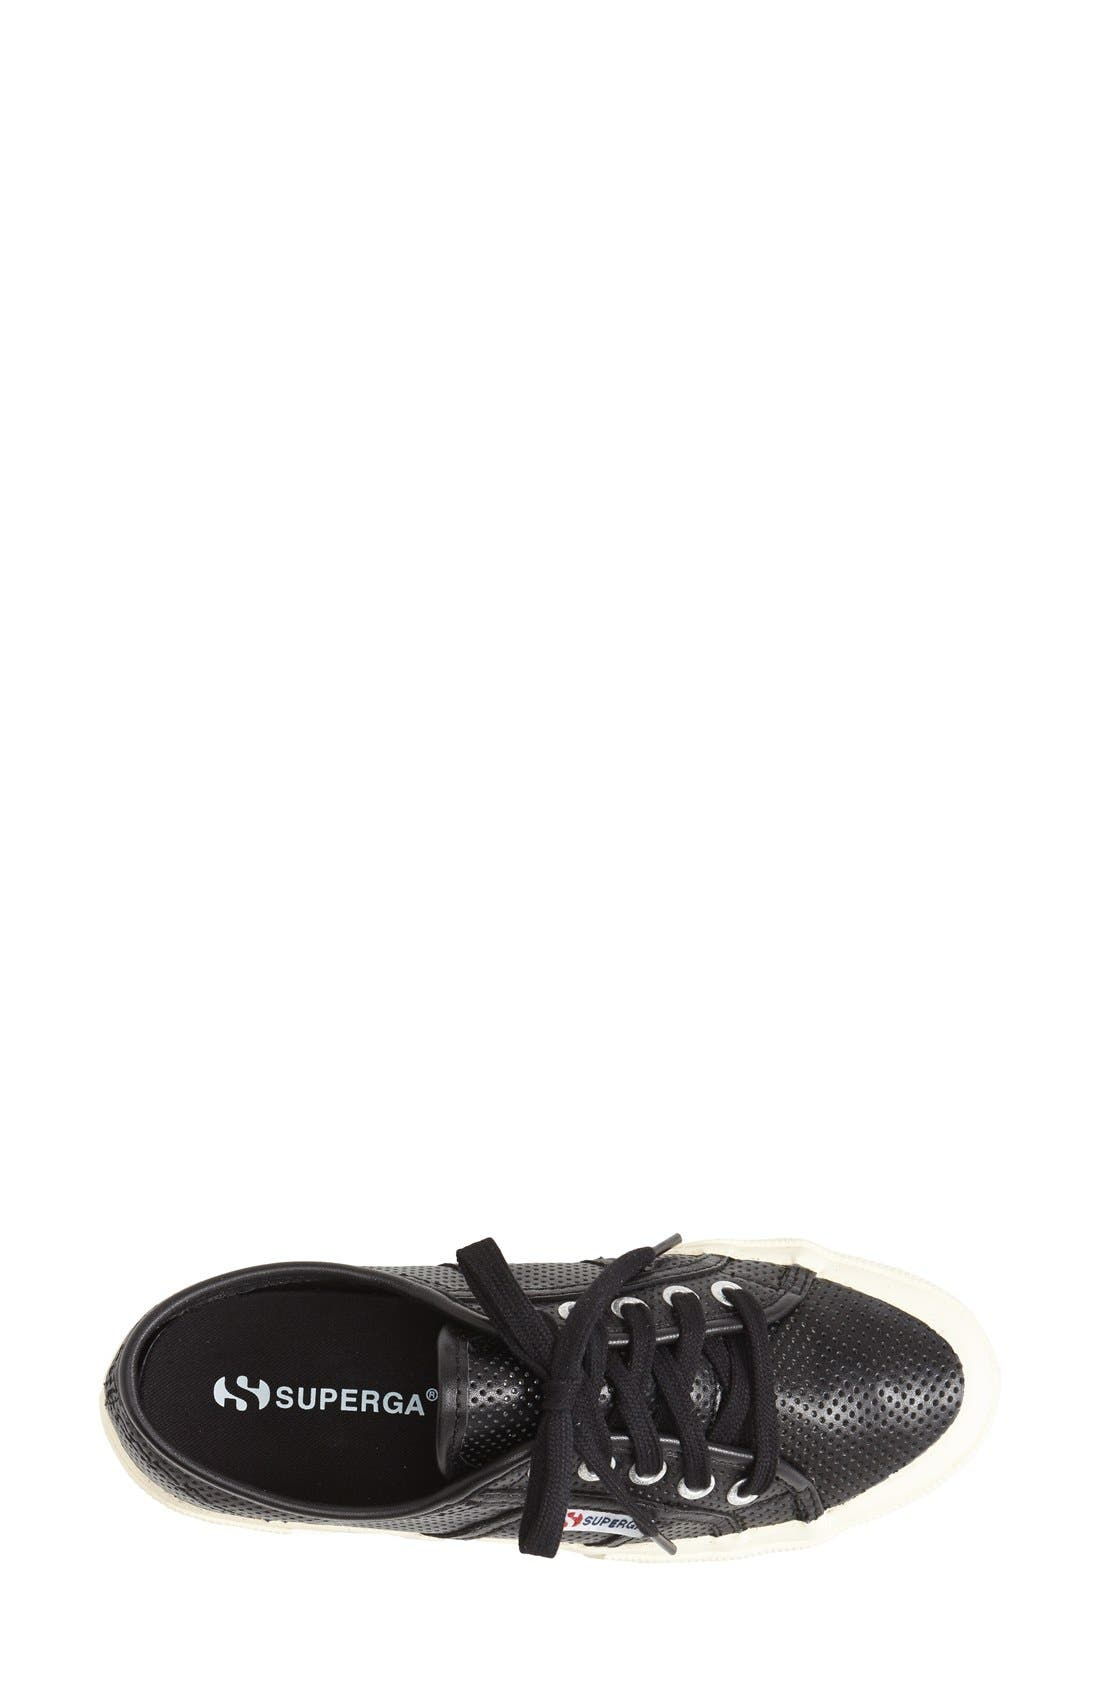 Alternate Image 3  - Superga 'Perforated Cotu' Leather Sneaker (Women)